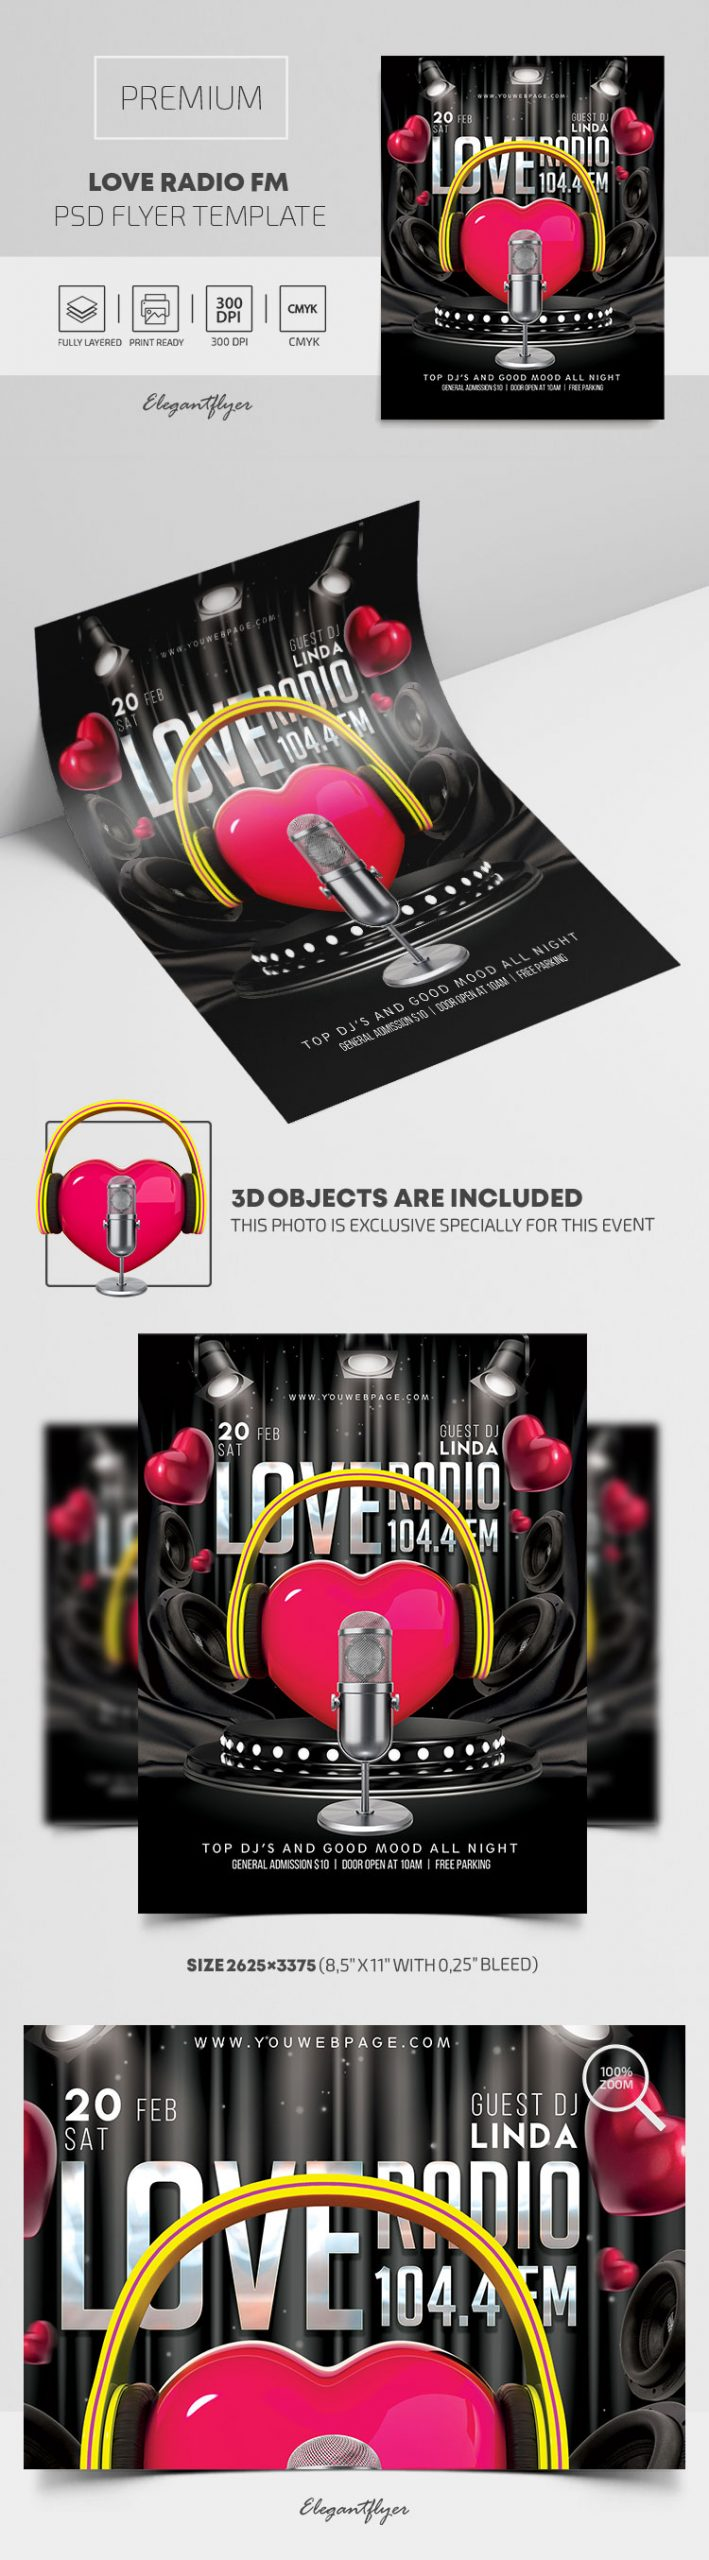 Love Radio FM – Premium PSD Flyer Template